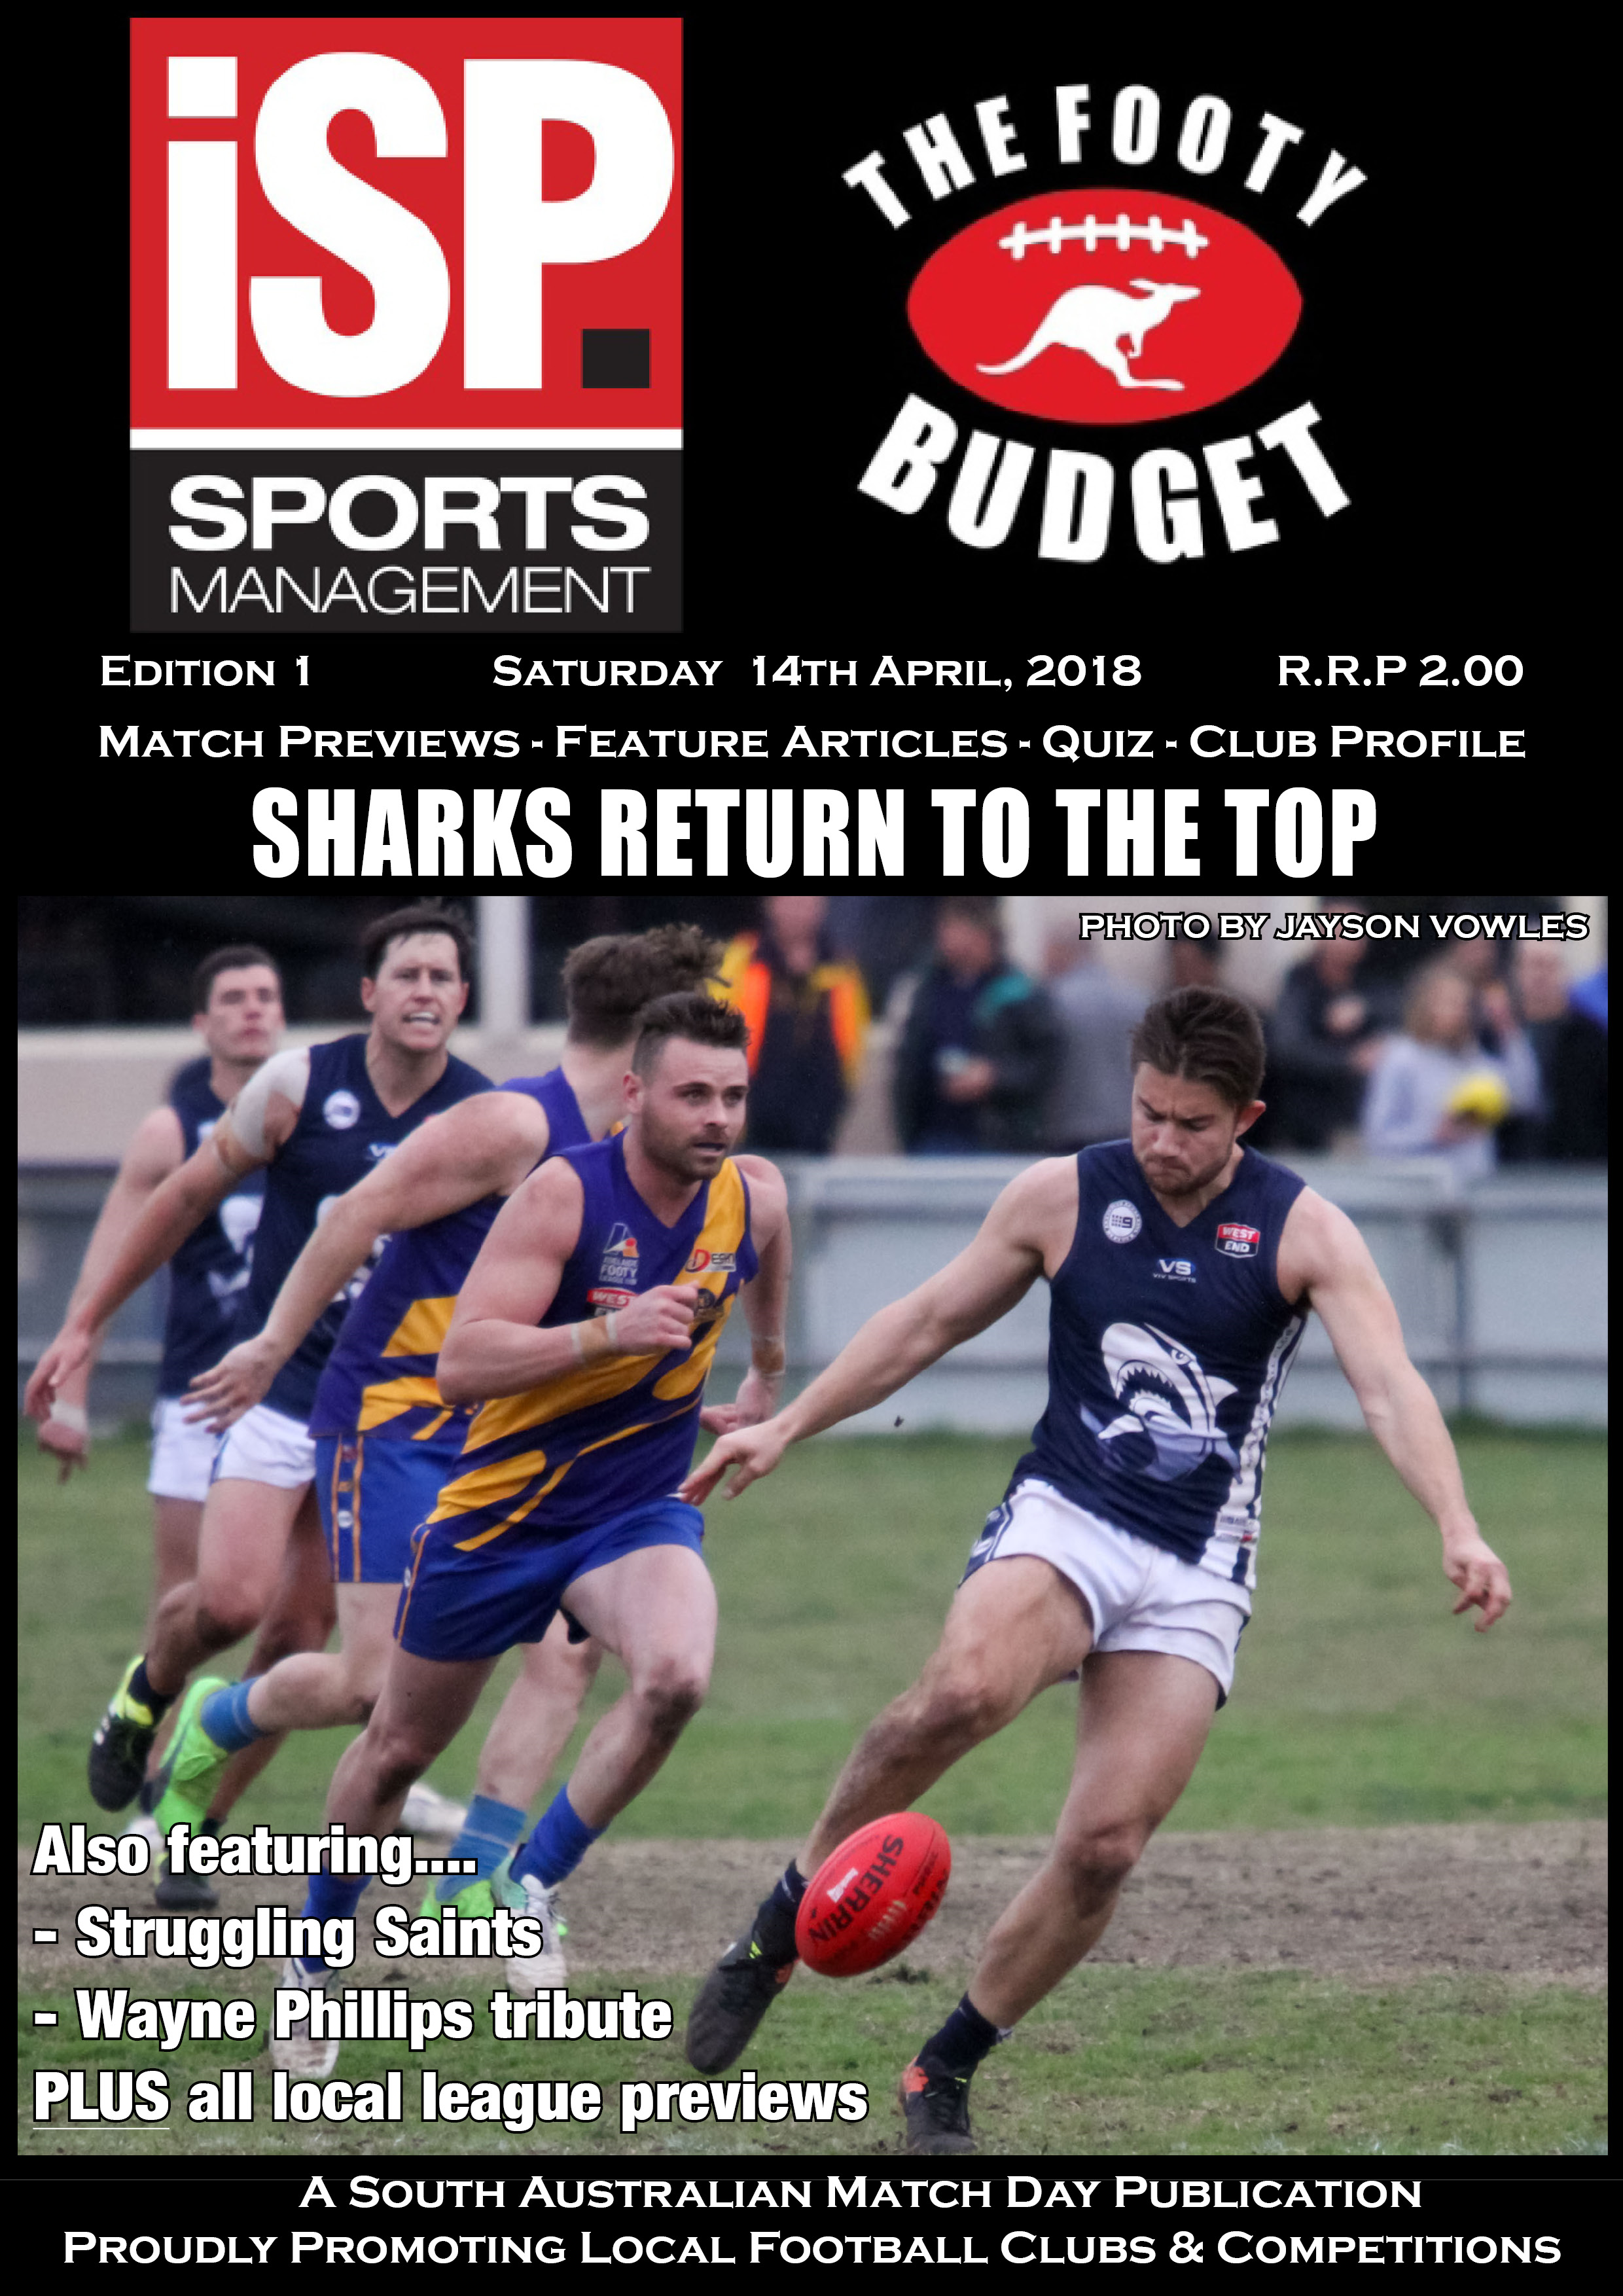 The Footy Budget